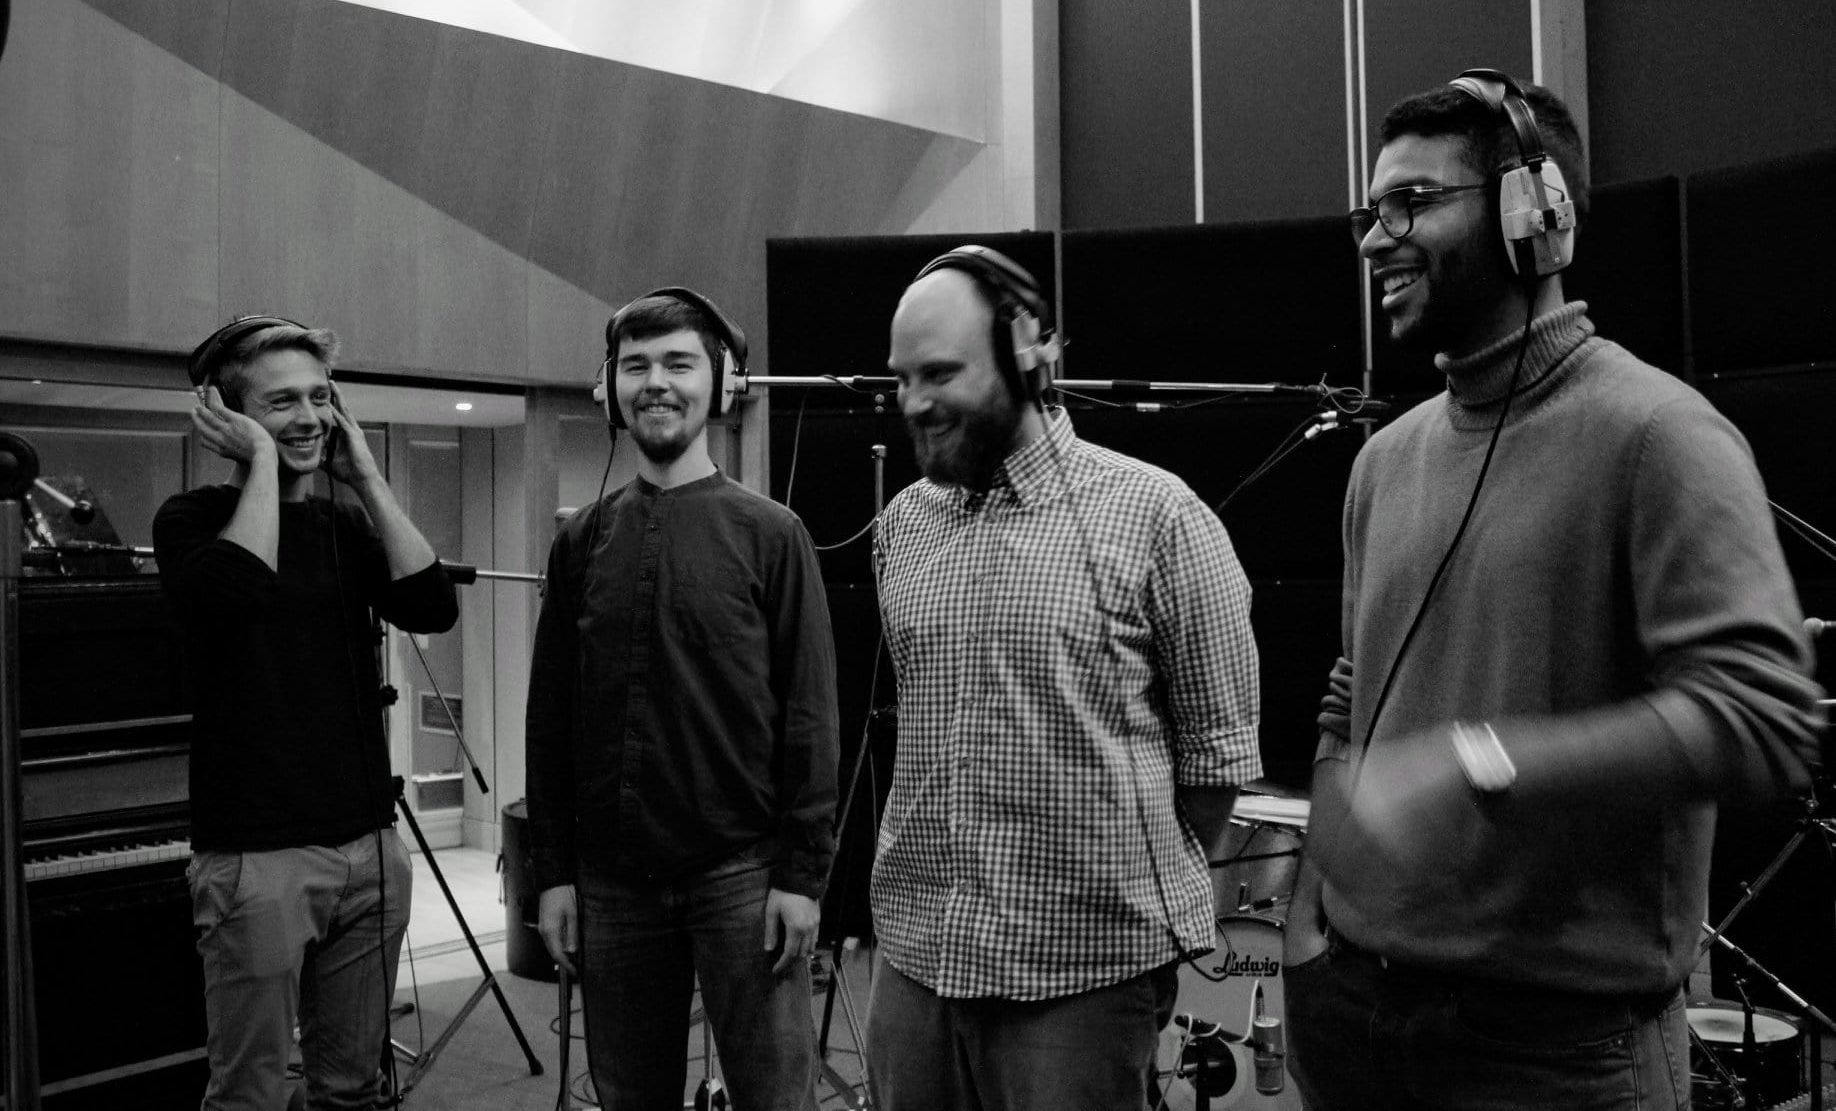 Vocalrecording   Abbey Road Studios   Absolventen Abbey Road Institute   Advanced Diploma In Music Production And Sound Engineering   Musikproduktion   Music Produktion   Musikbusiness   Sound Engineering